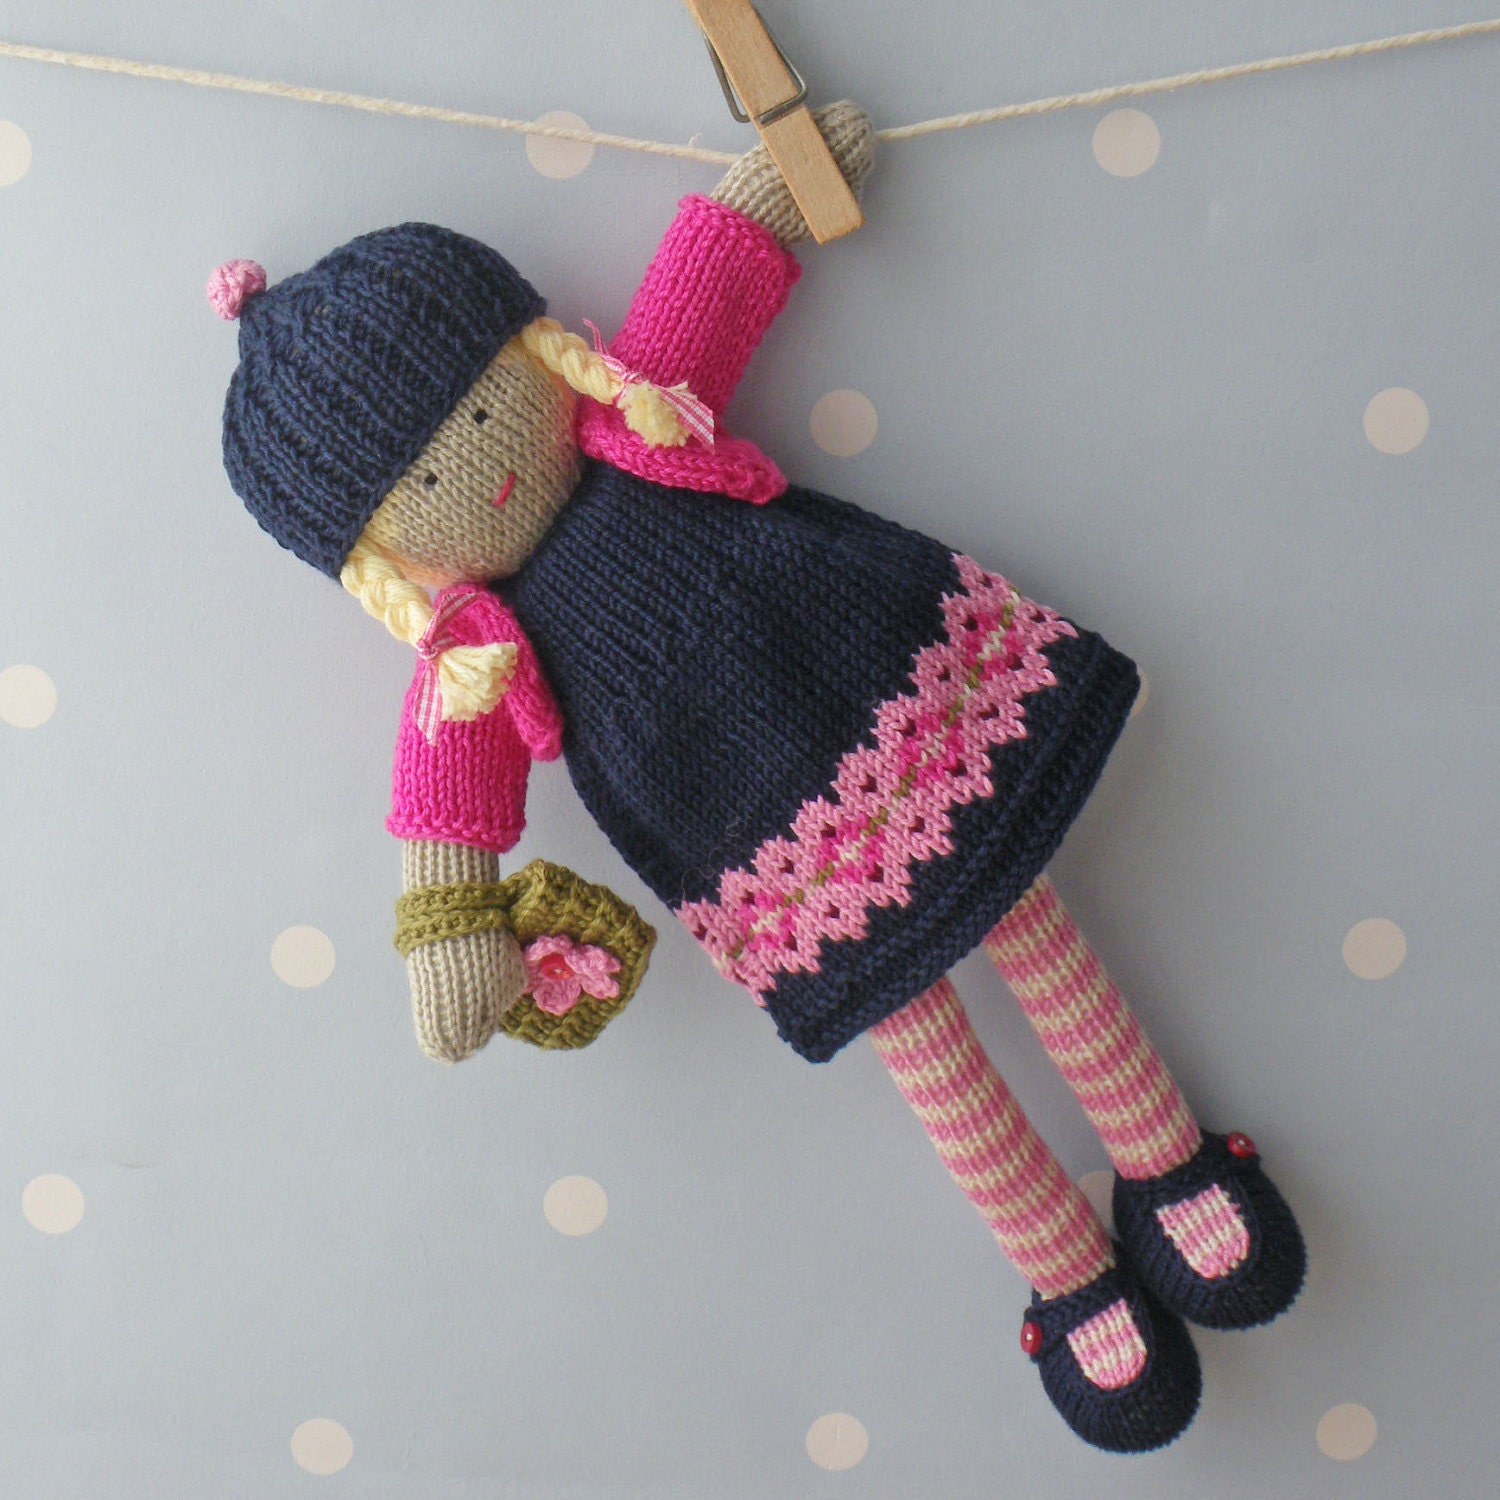 Knitting Doll Pattern : Naomi hand knitted doll